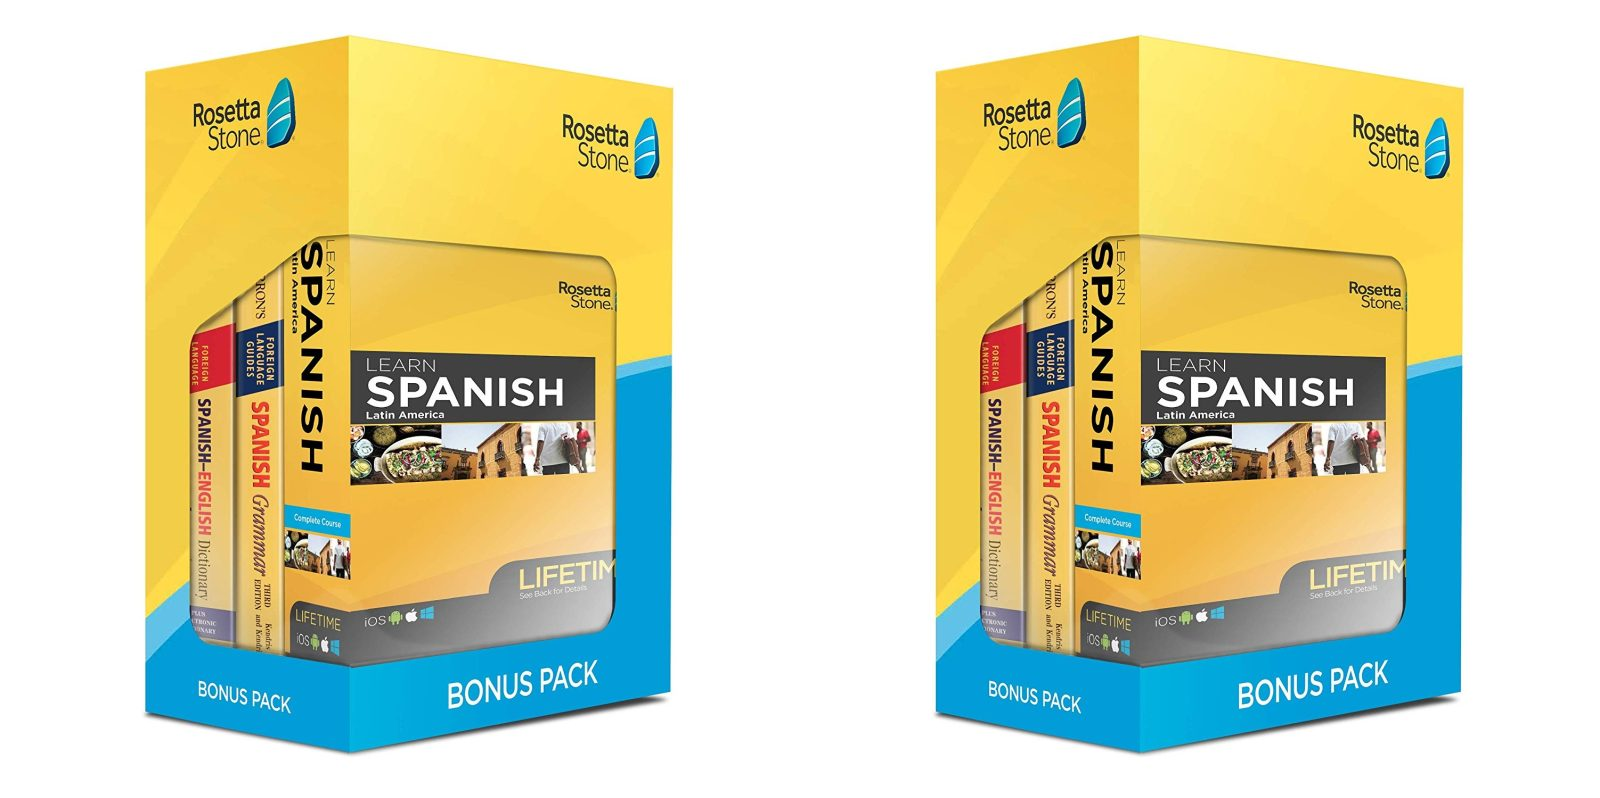 Learn Spanish with the Rosetta Stone Bonus Pack at $219